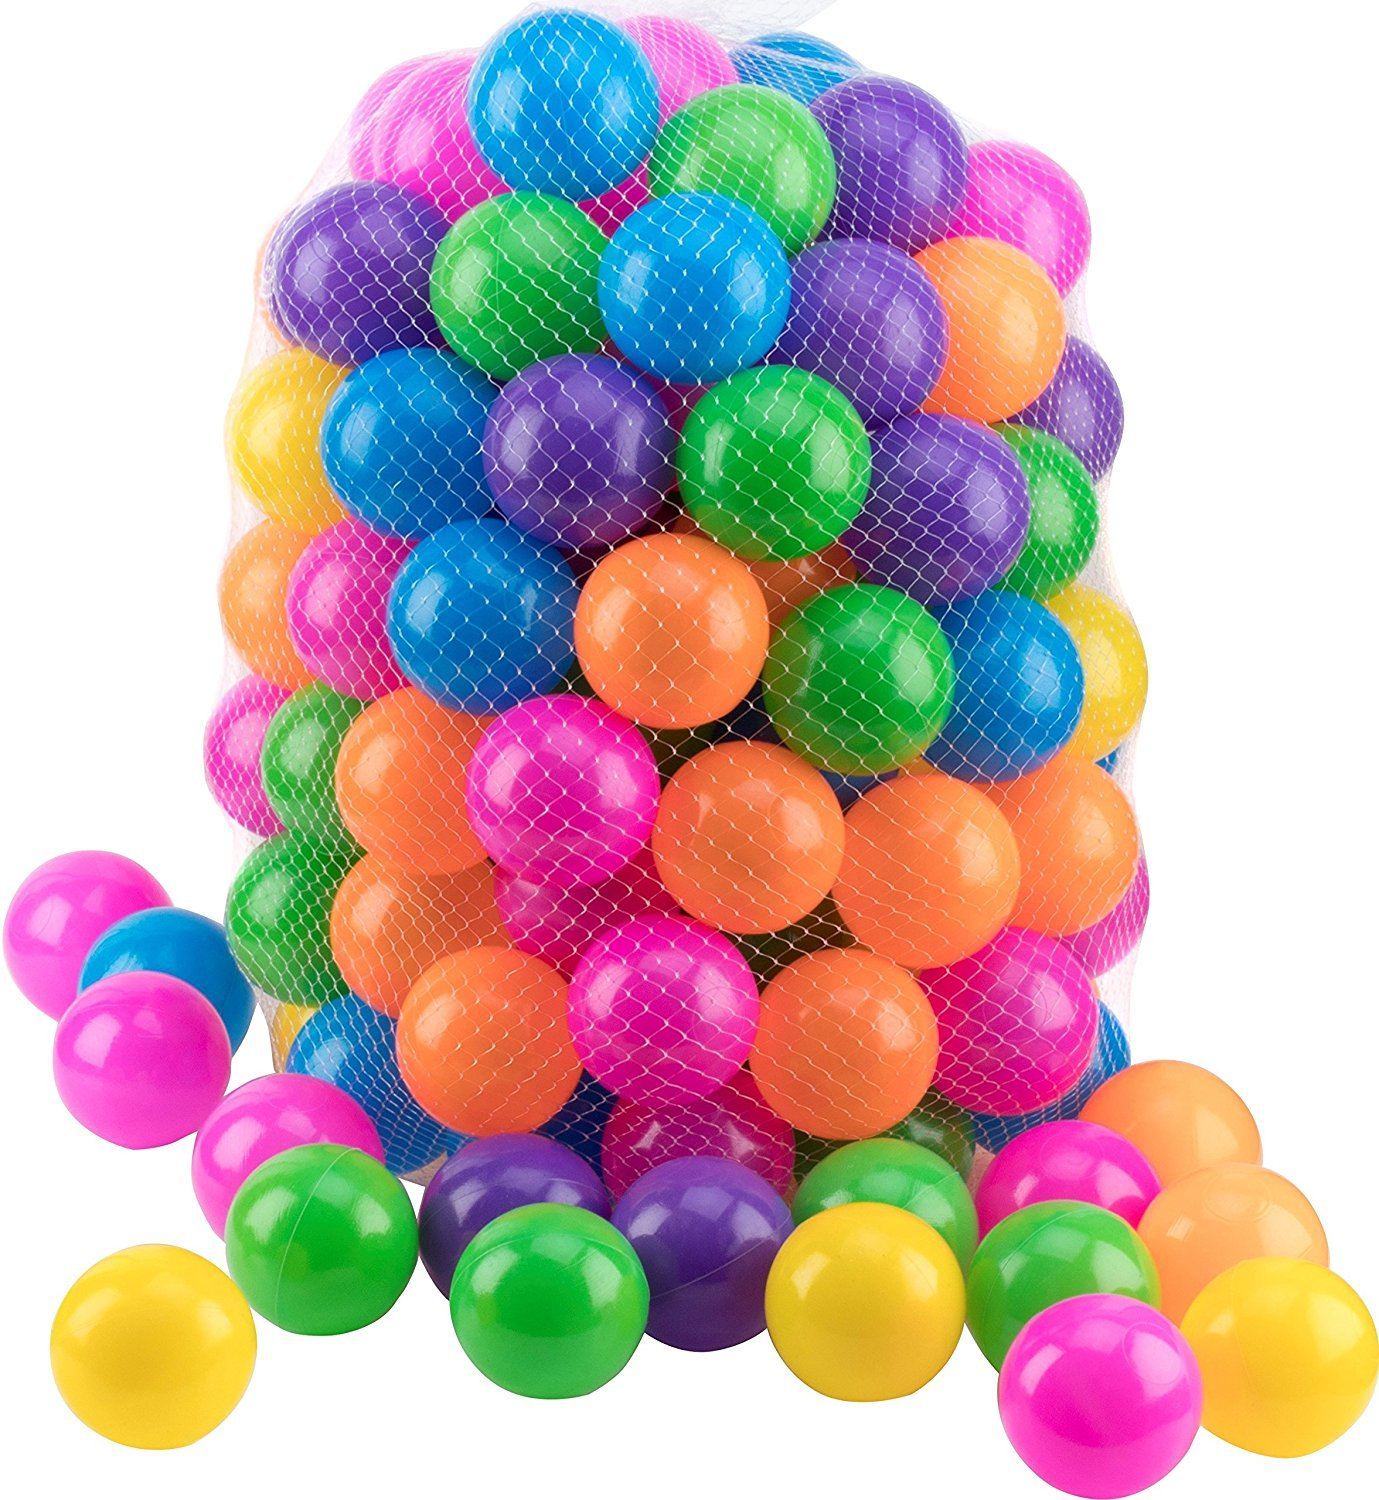 Play22 Ball Pit 100 Pack - Ball Pit Balls Crush Proof BPA Free - 6 Colors - Fun Ball Pit For Kids and Baby - Ball Pit For Any Ball Pool - Original by Play22